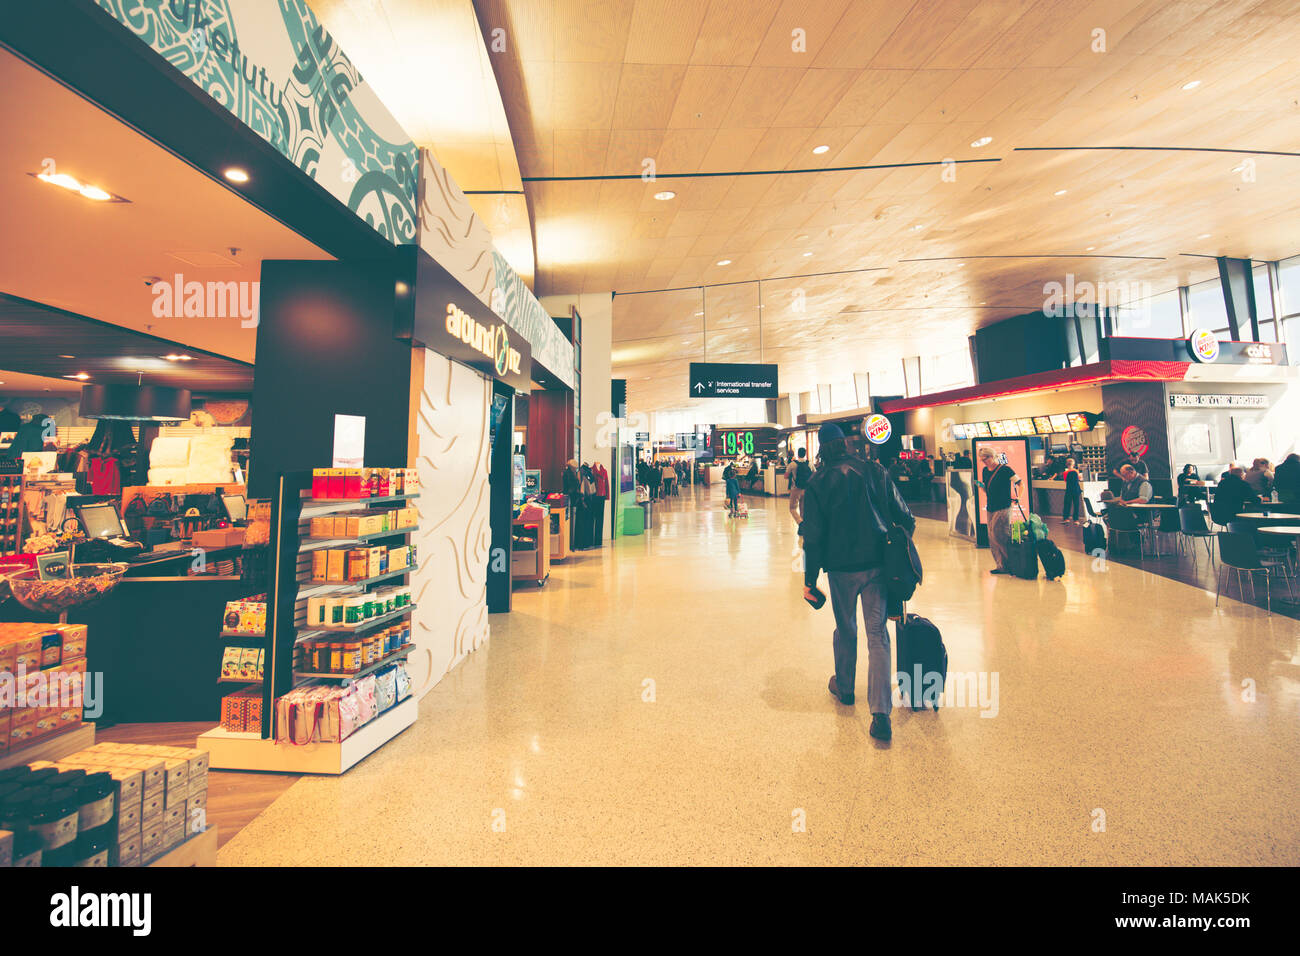 WELLINGTON, NEW SEALAND – OCTOBER 16, 2016: People Walking Inside The Terminal Of WELLINGTON International Airport - Stock Image